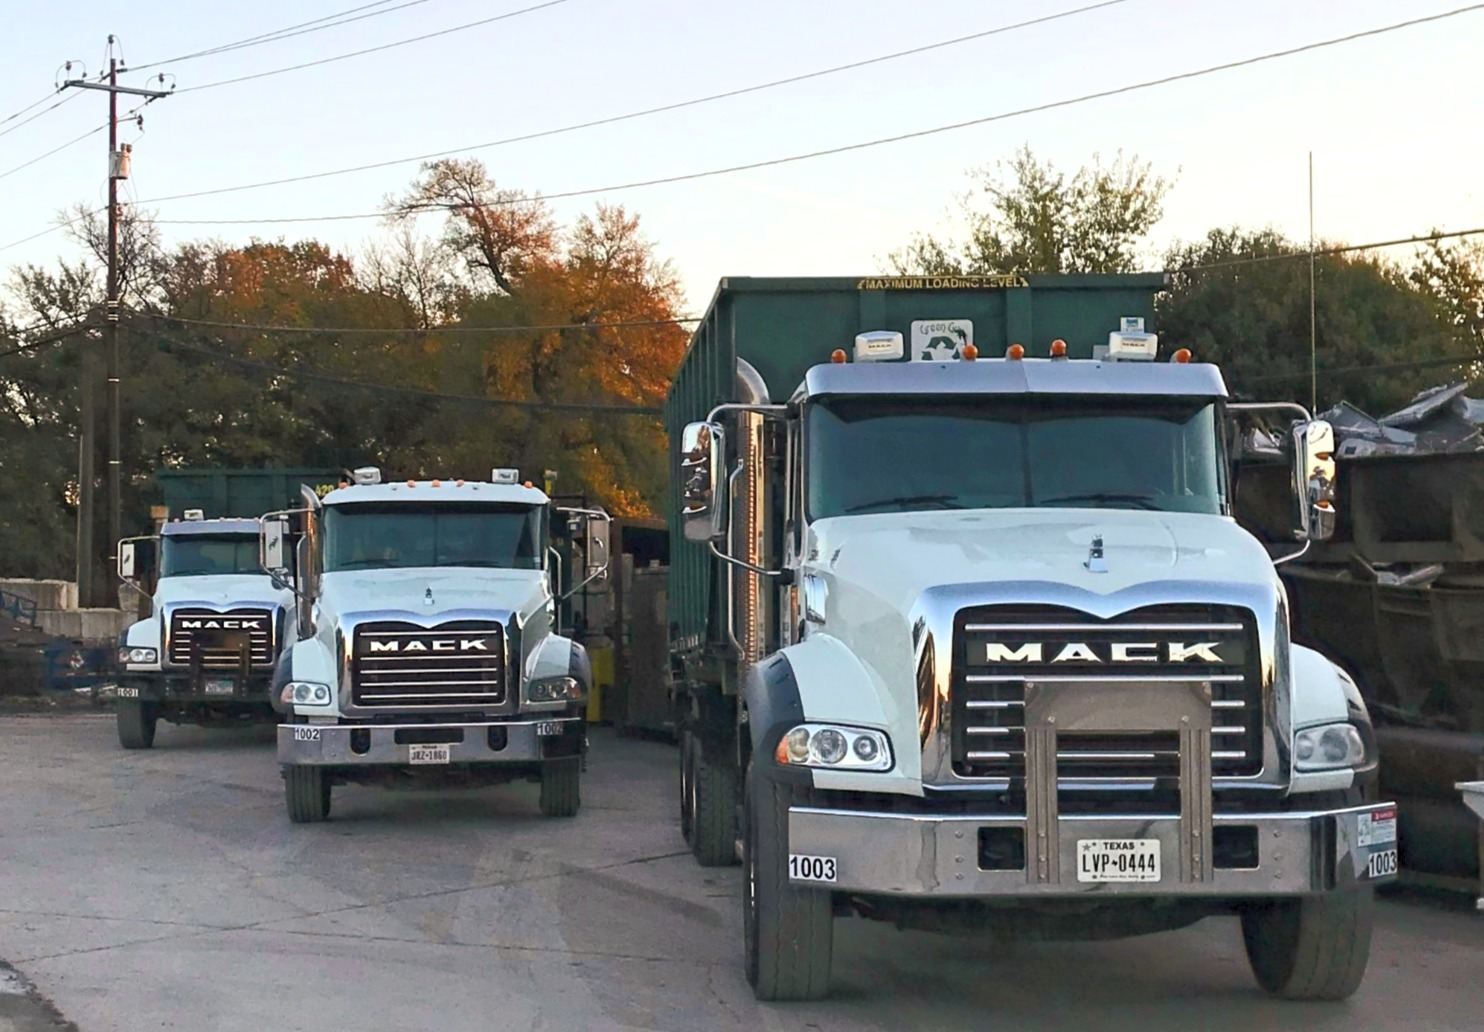 Mack Roll Off Trucks